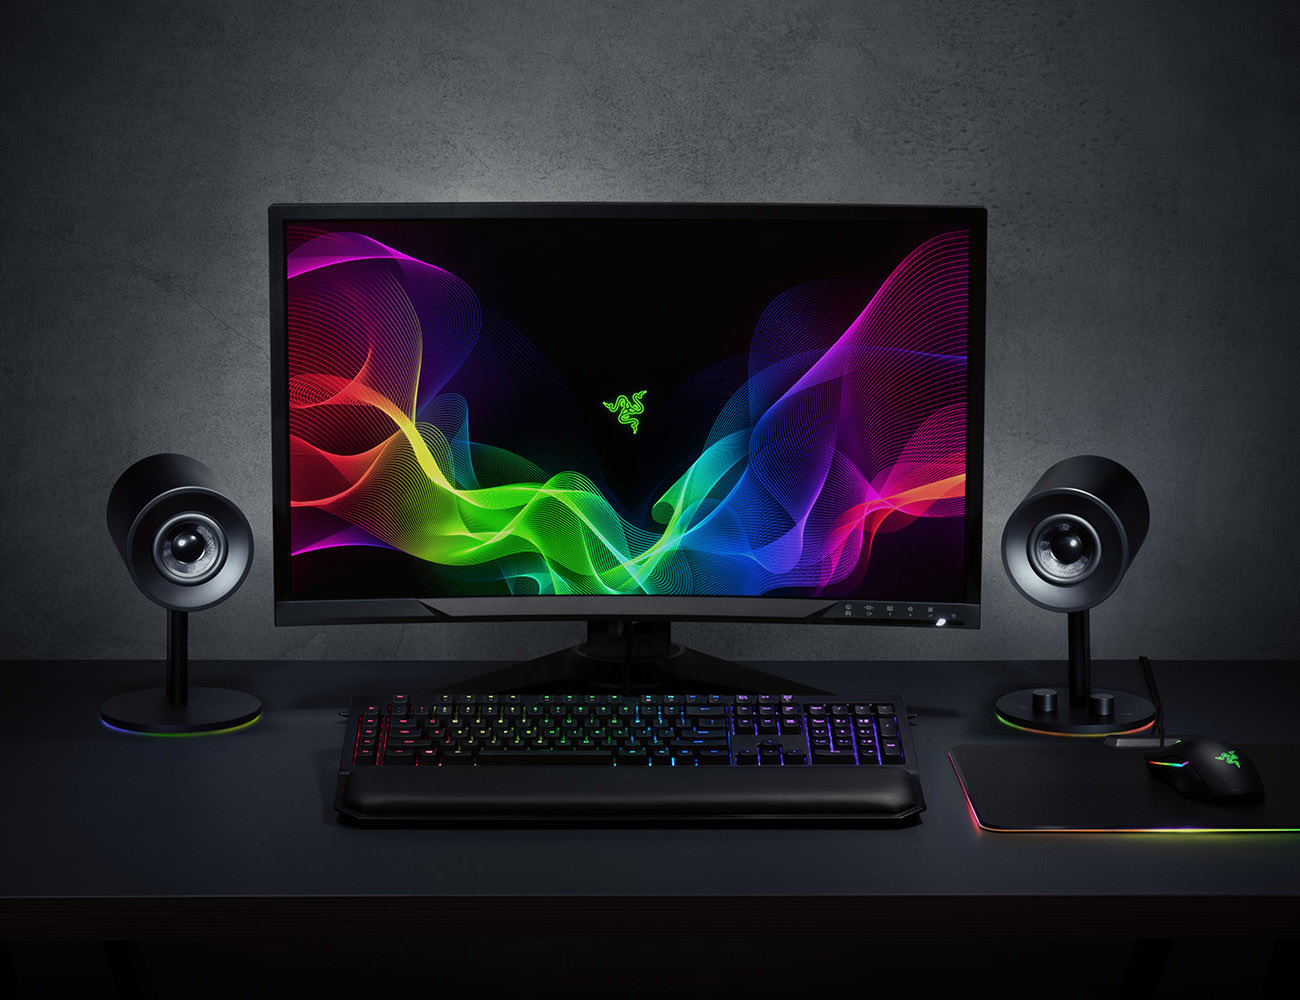 Razer Nommo PC 2.1 Gaming Speakers